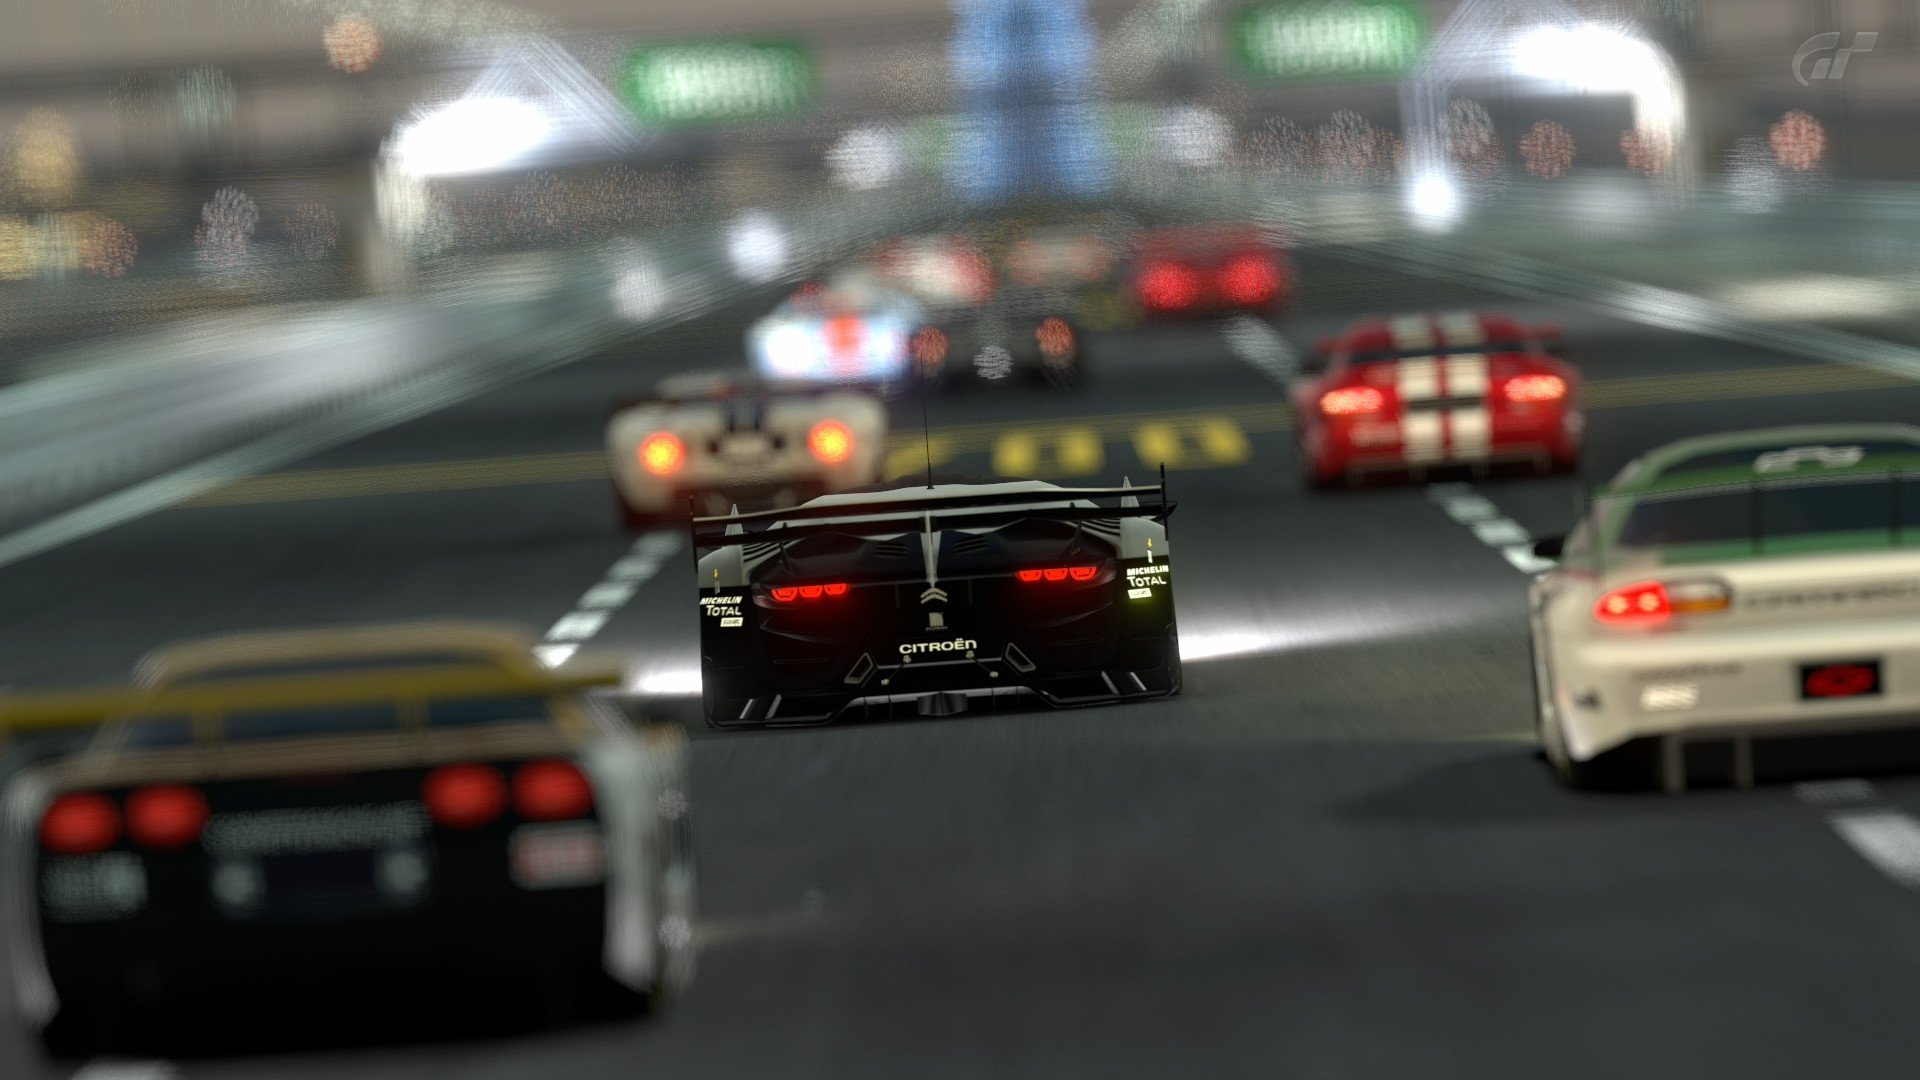 video games cars vehicles Gran Turismo 5 Playstation 3 GT by CitroAIA